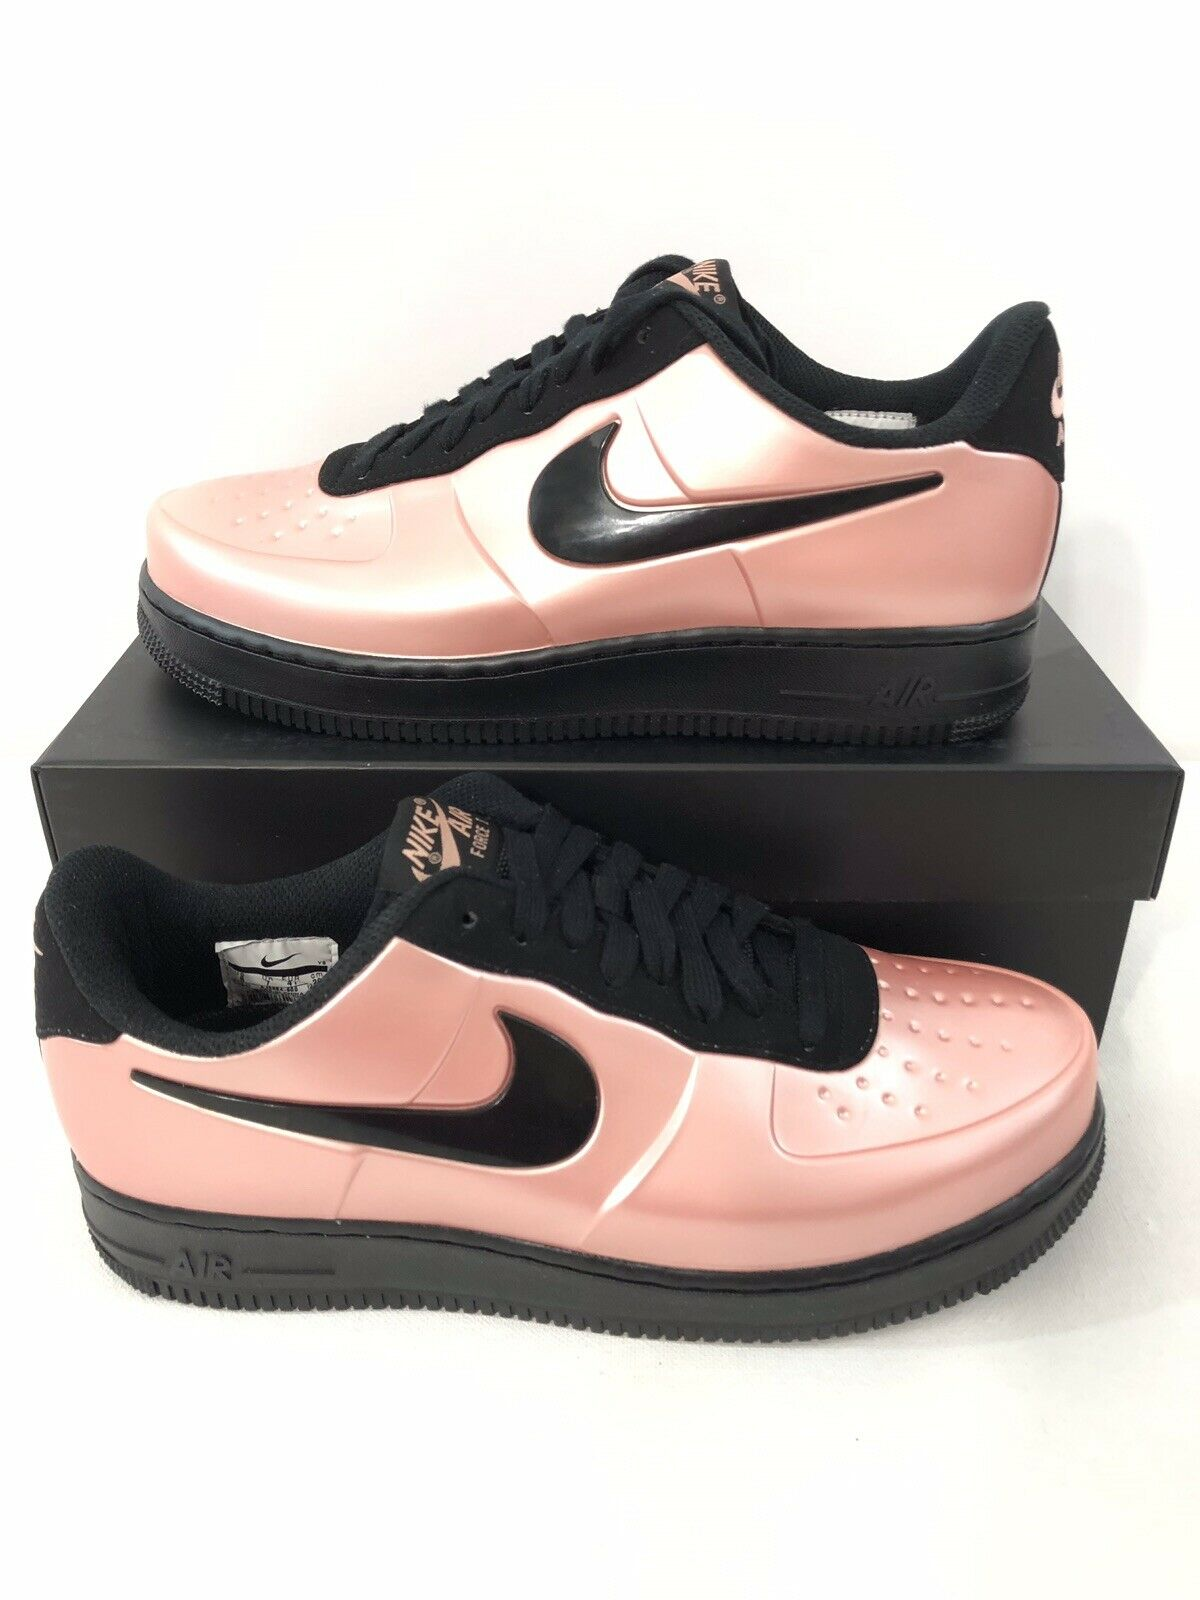 Nike Mens Air Force One Foamposite Pro Cup Cup Cup Coral